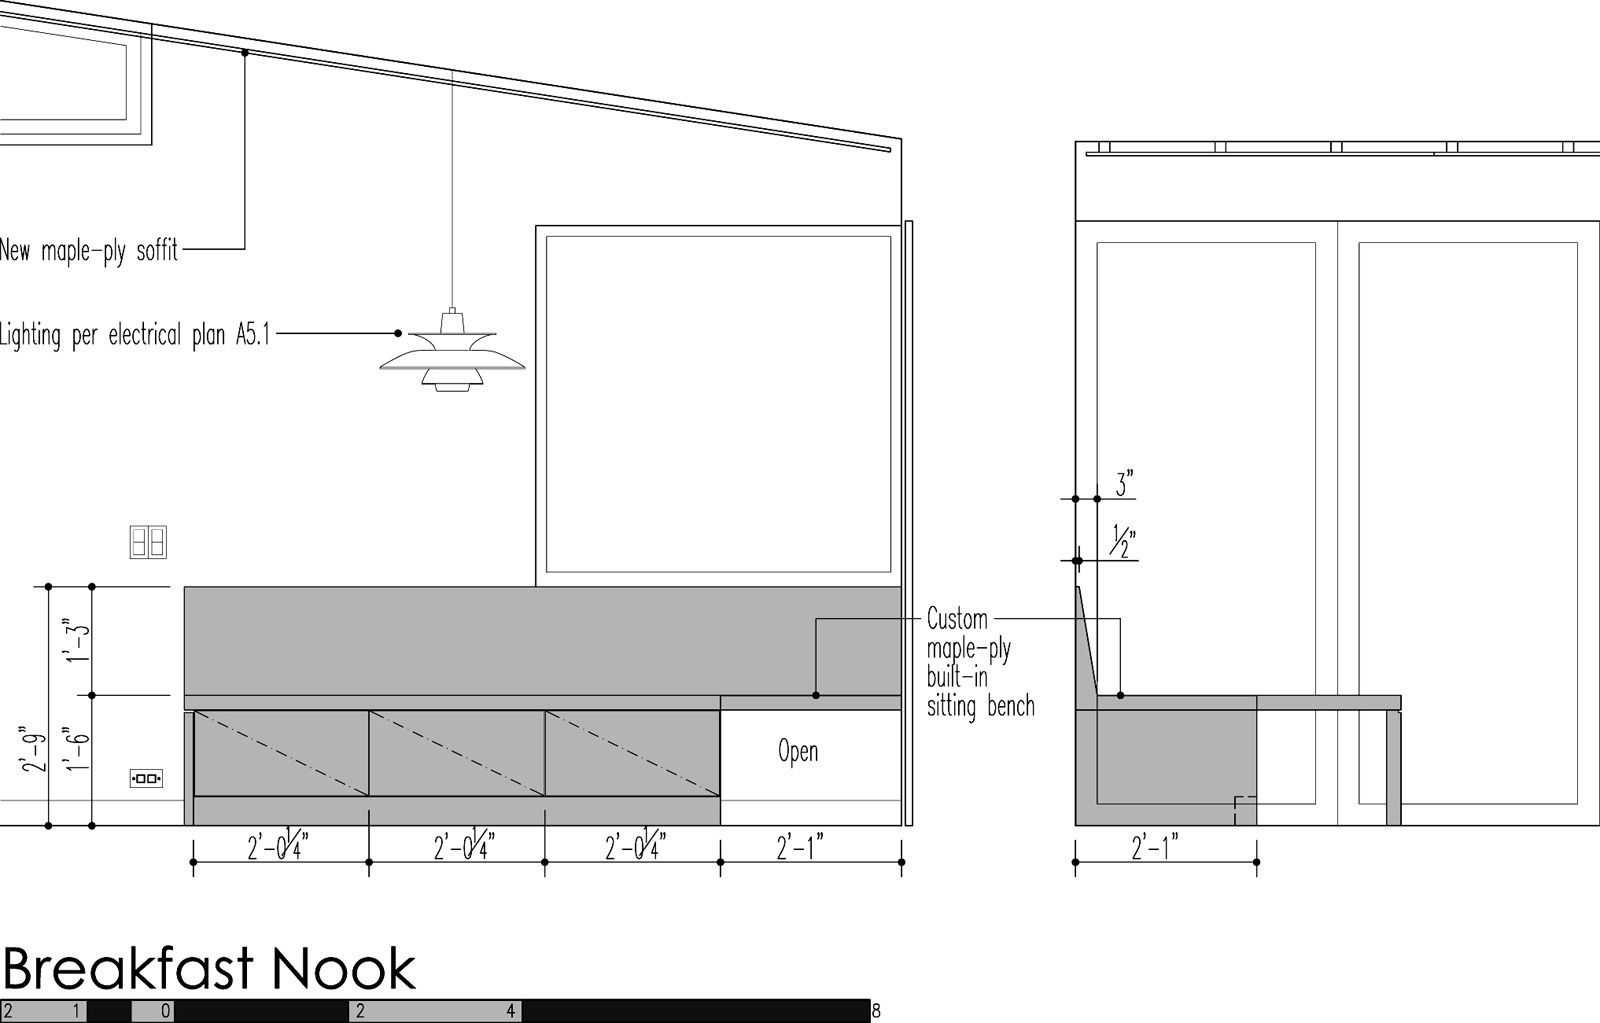 Breakfast nook elevation dimensions.